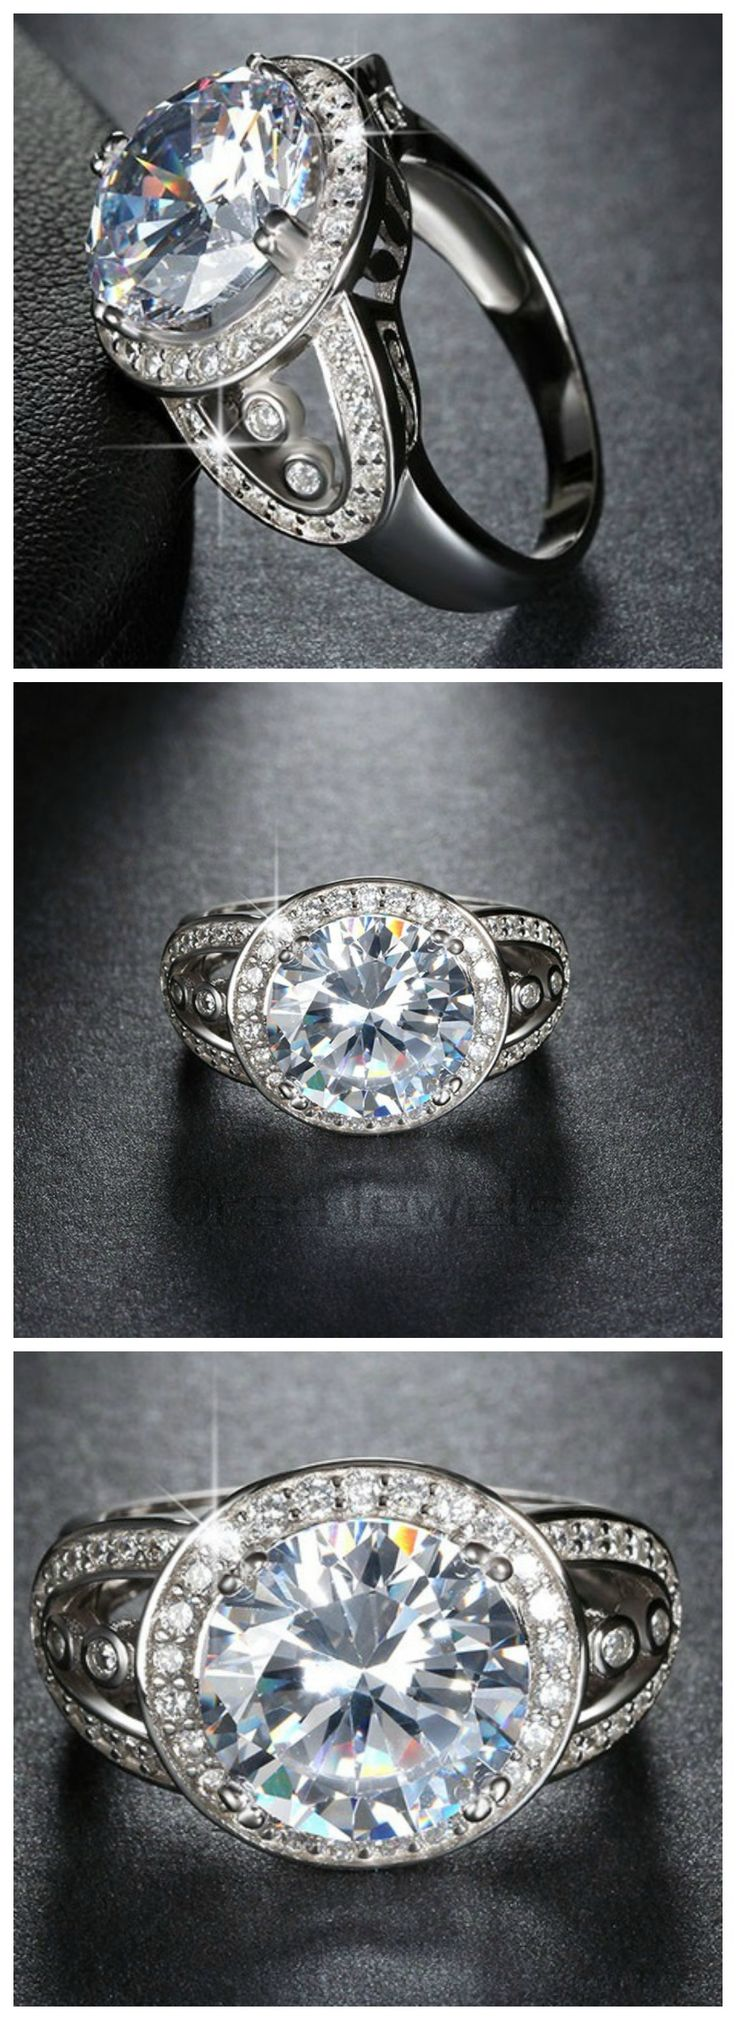 Ziphlets engagement ring. Use code ZIPHLETS10 to get 10% off sitewide